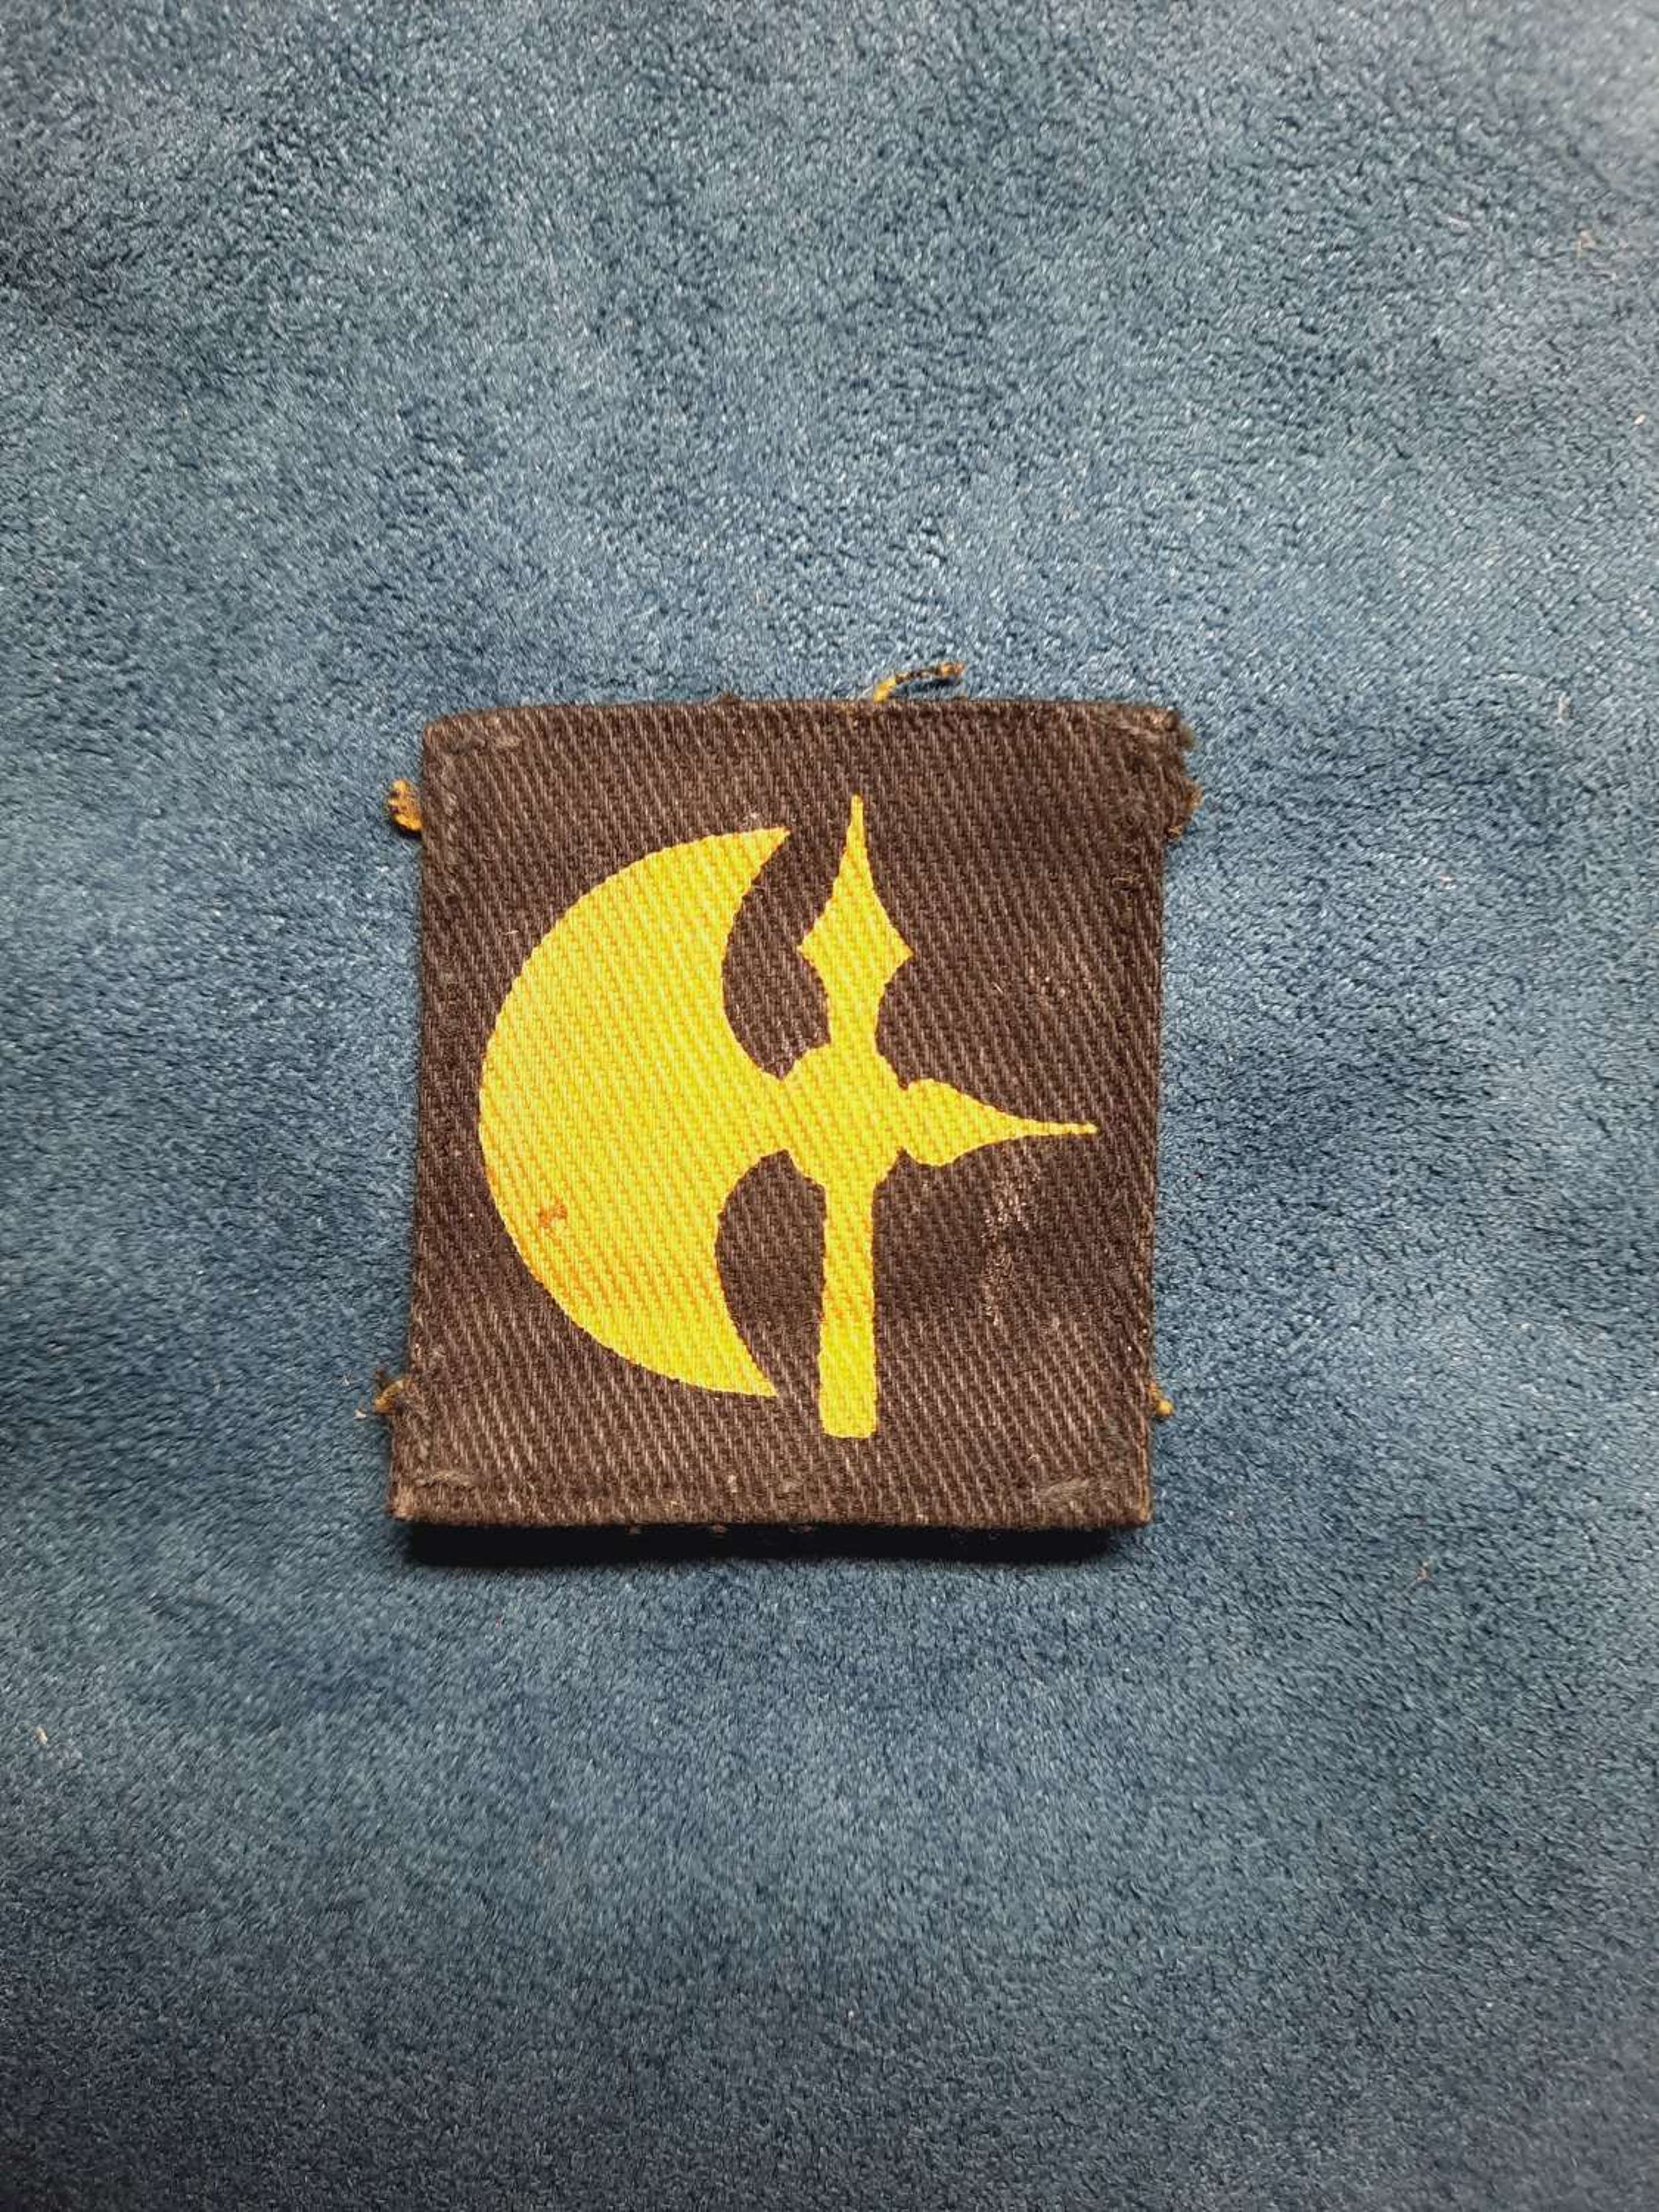 78th Infantry Division printed patch